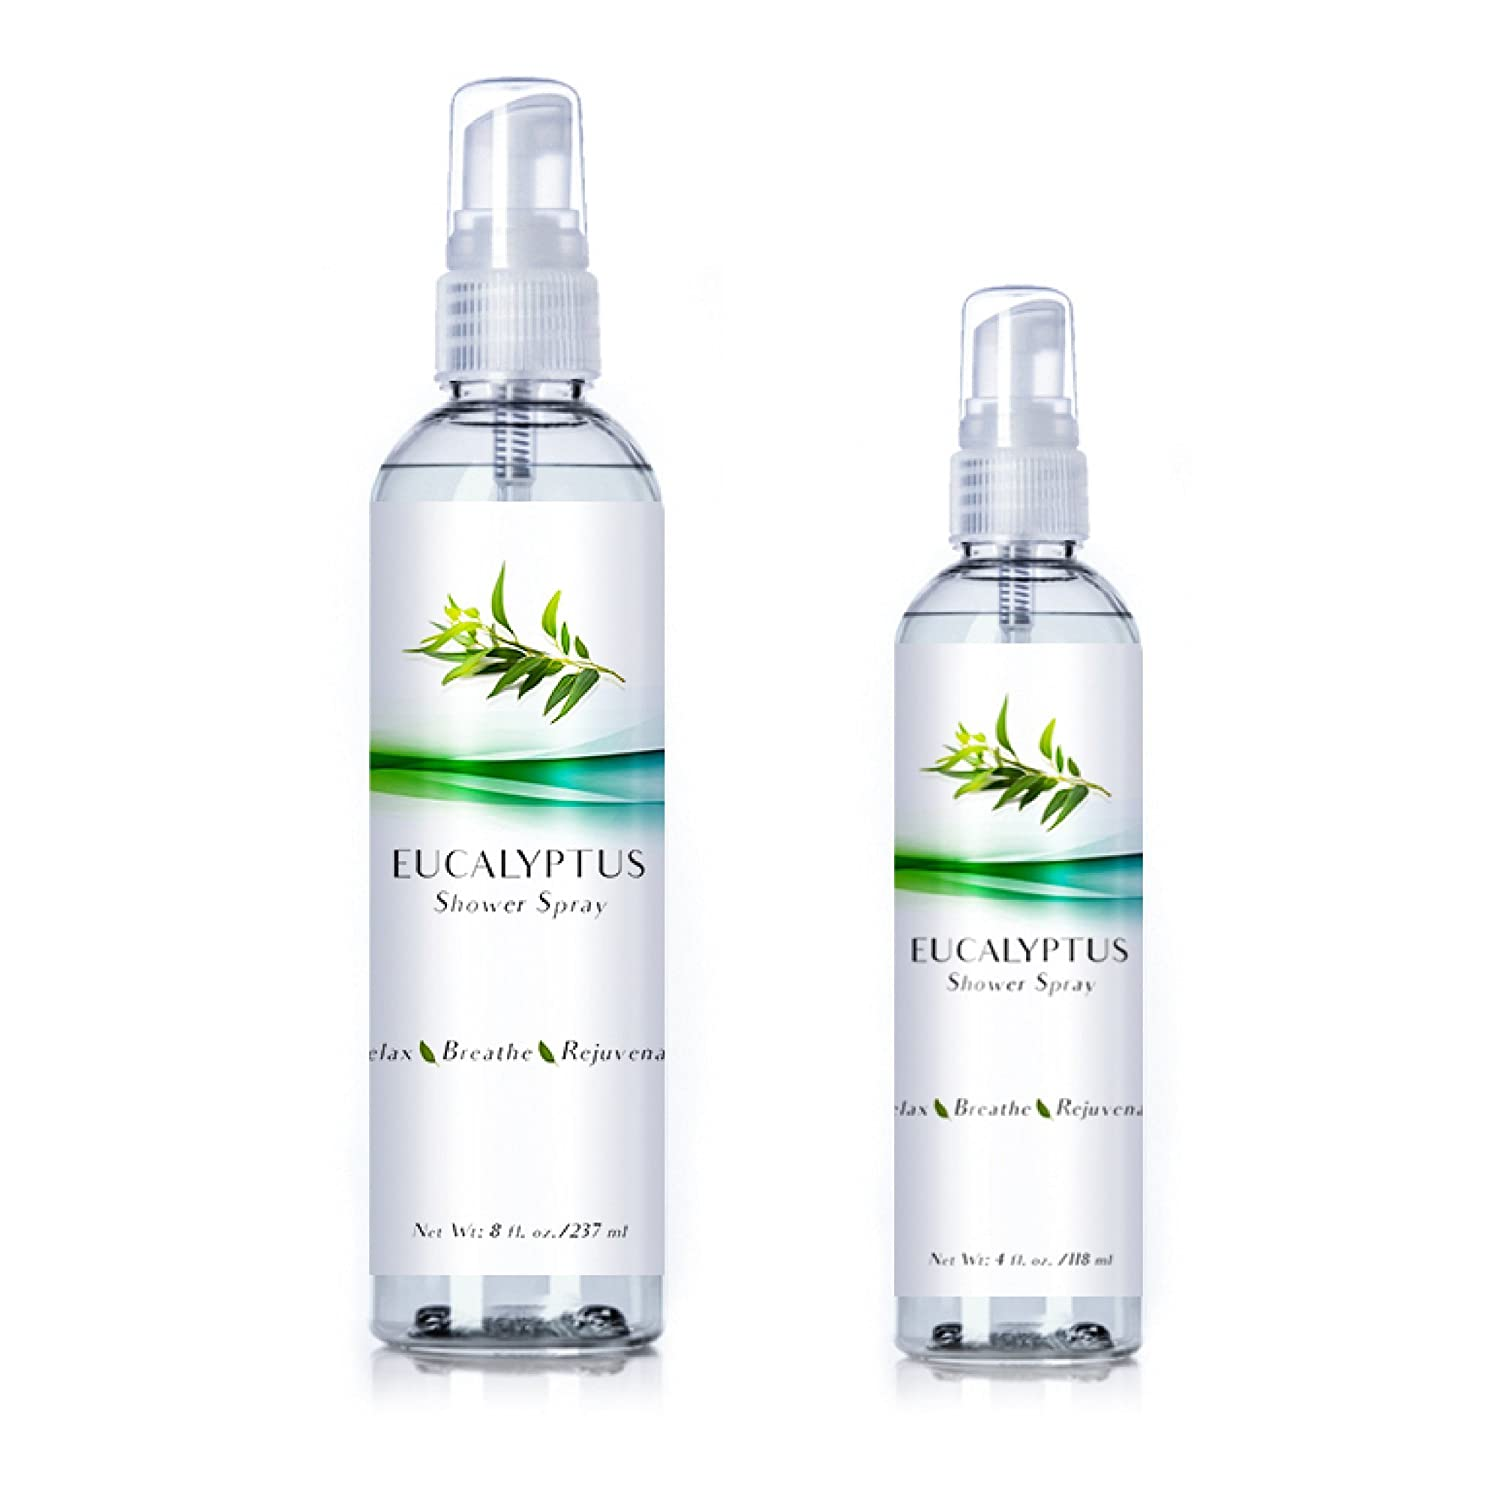 New Eucalyptus Oil Shower Spray, Highest Quality Essential Oil Spray for Showers, Steam Rooms and Sauna | Two Pack for Home and Travel (Eucalyptus, 4oz/8oz)